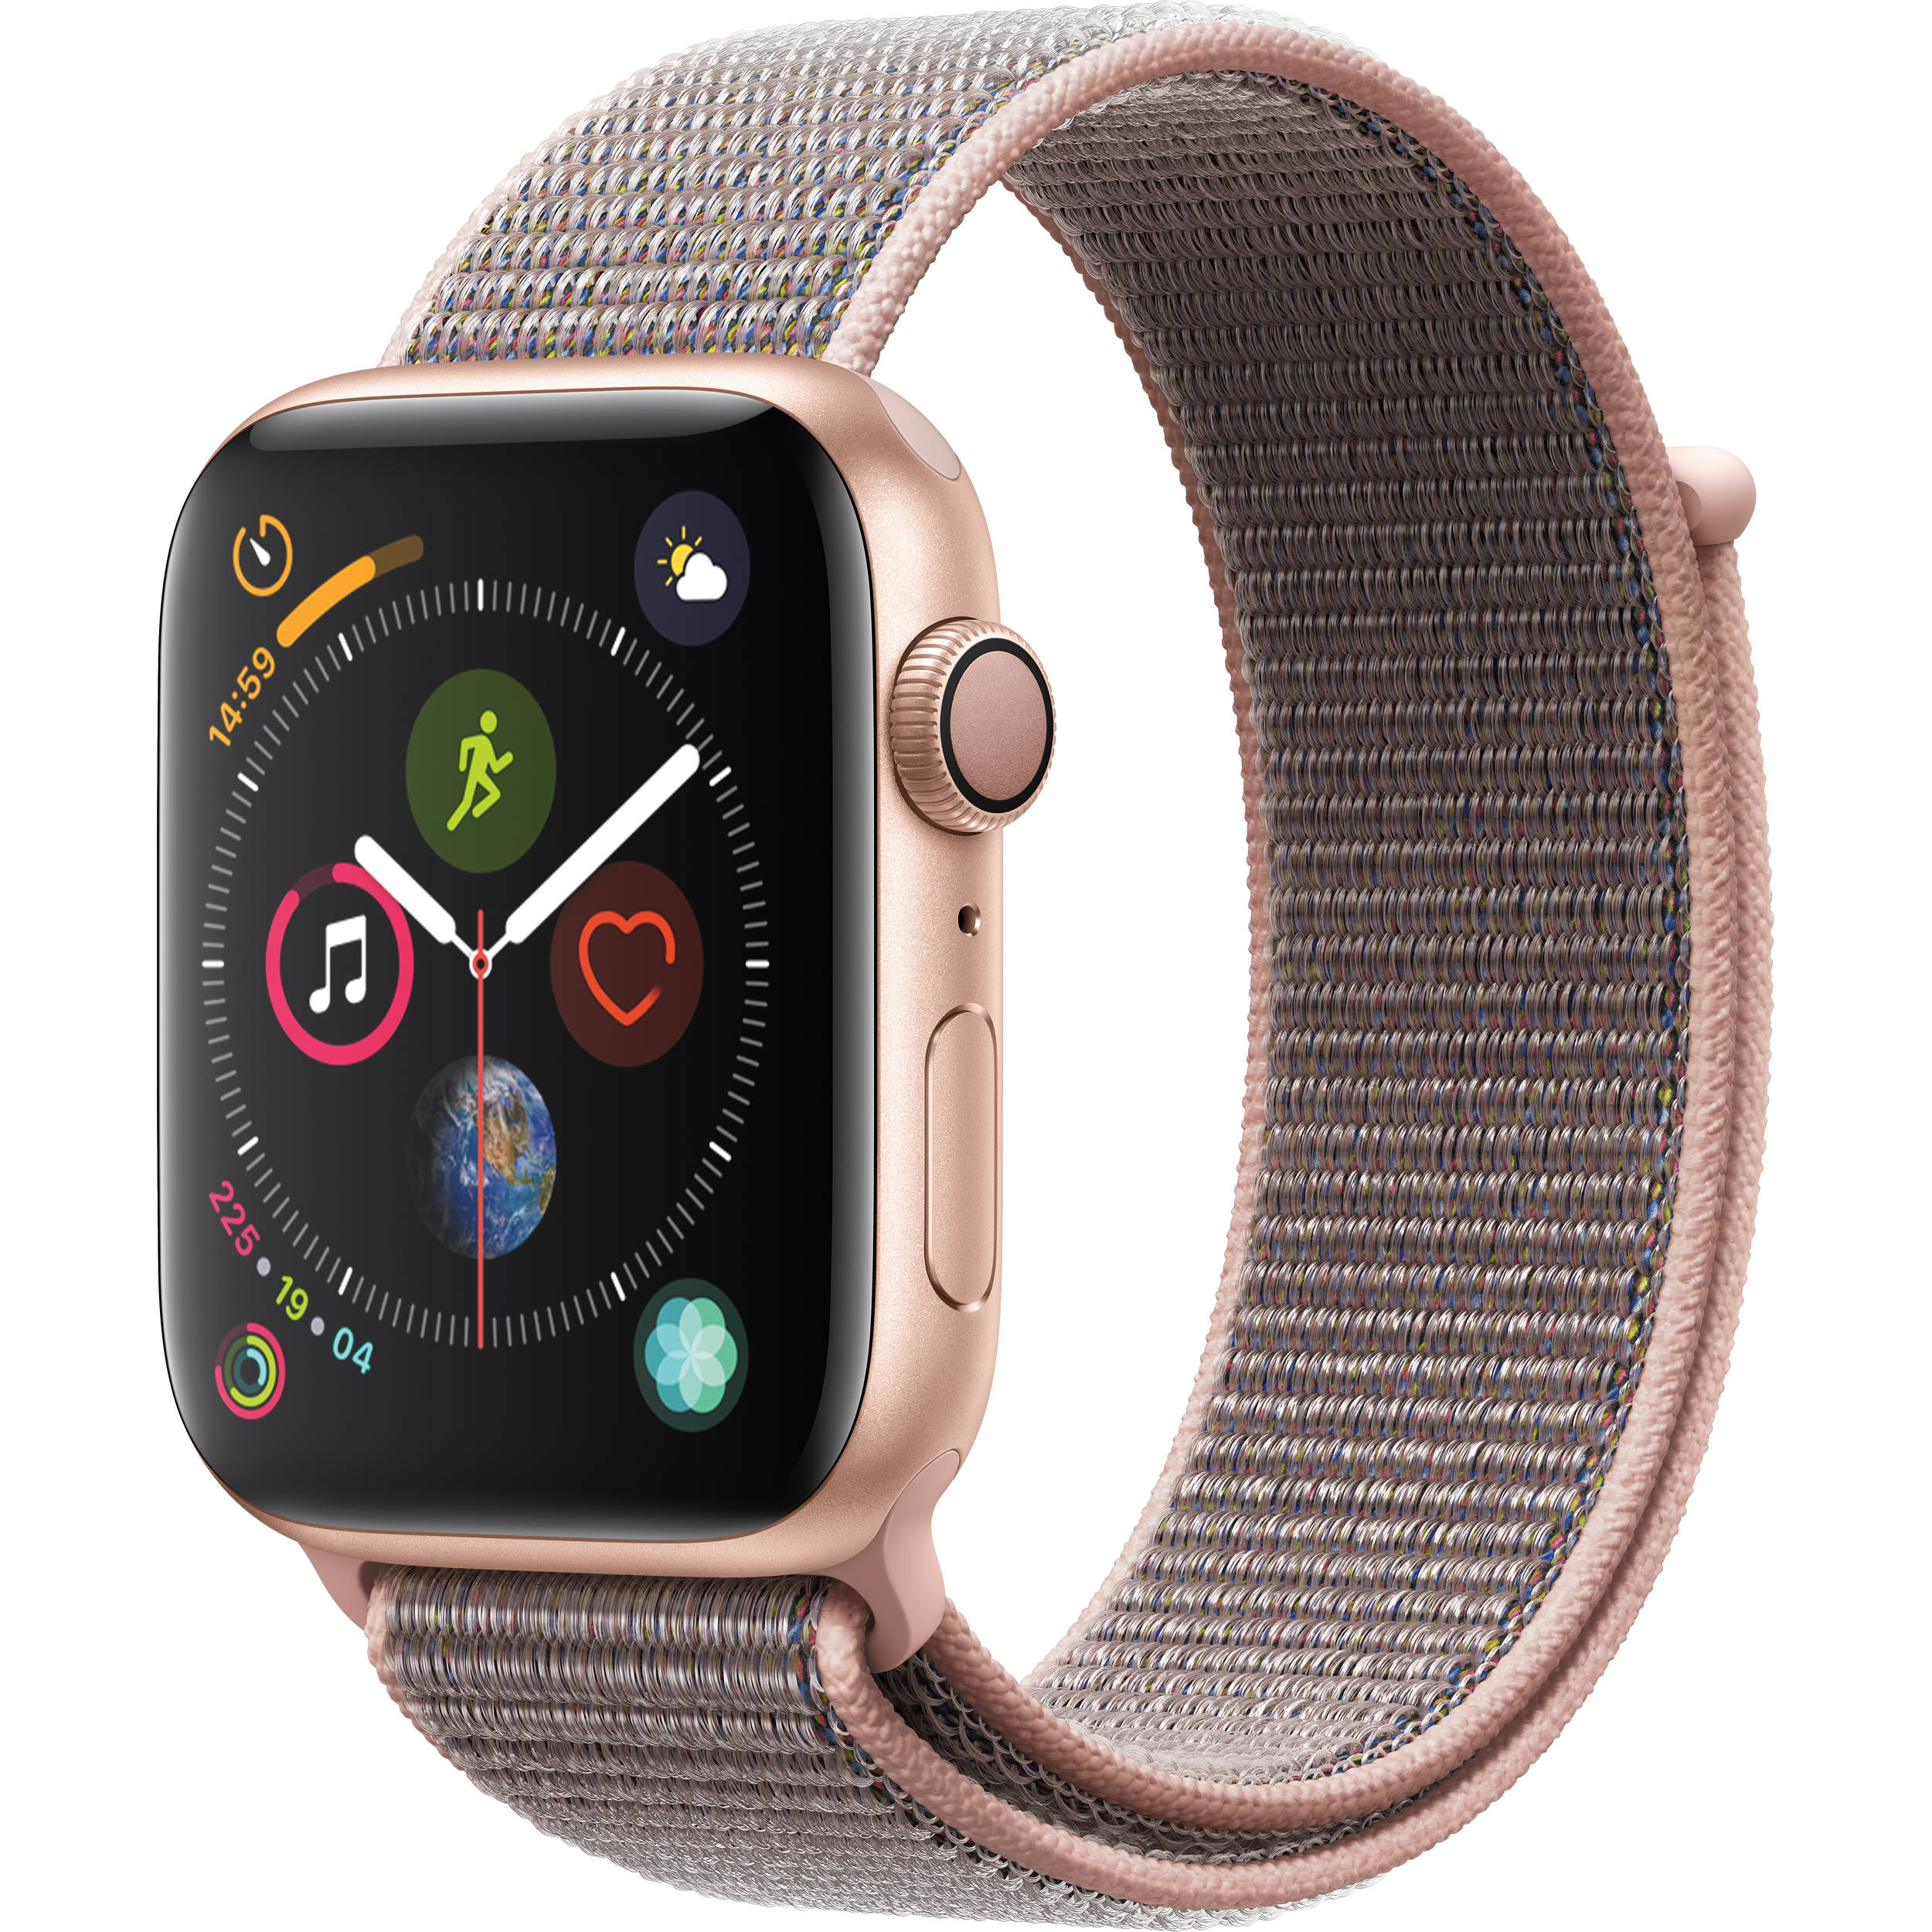 Apple Watch Series 4 Gold Aluminum Case with Pink Sand Sport Loop (GPS) 40mm Band fits 130–200mm wrists